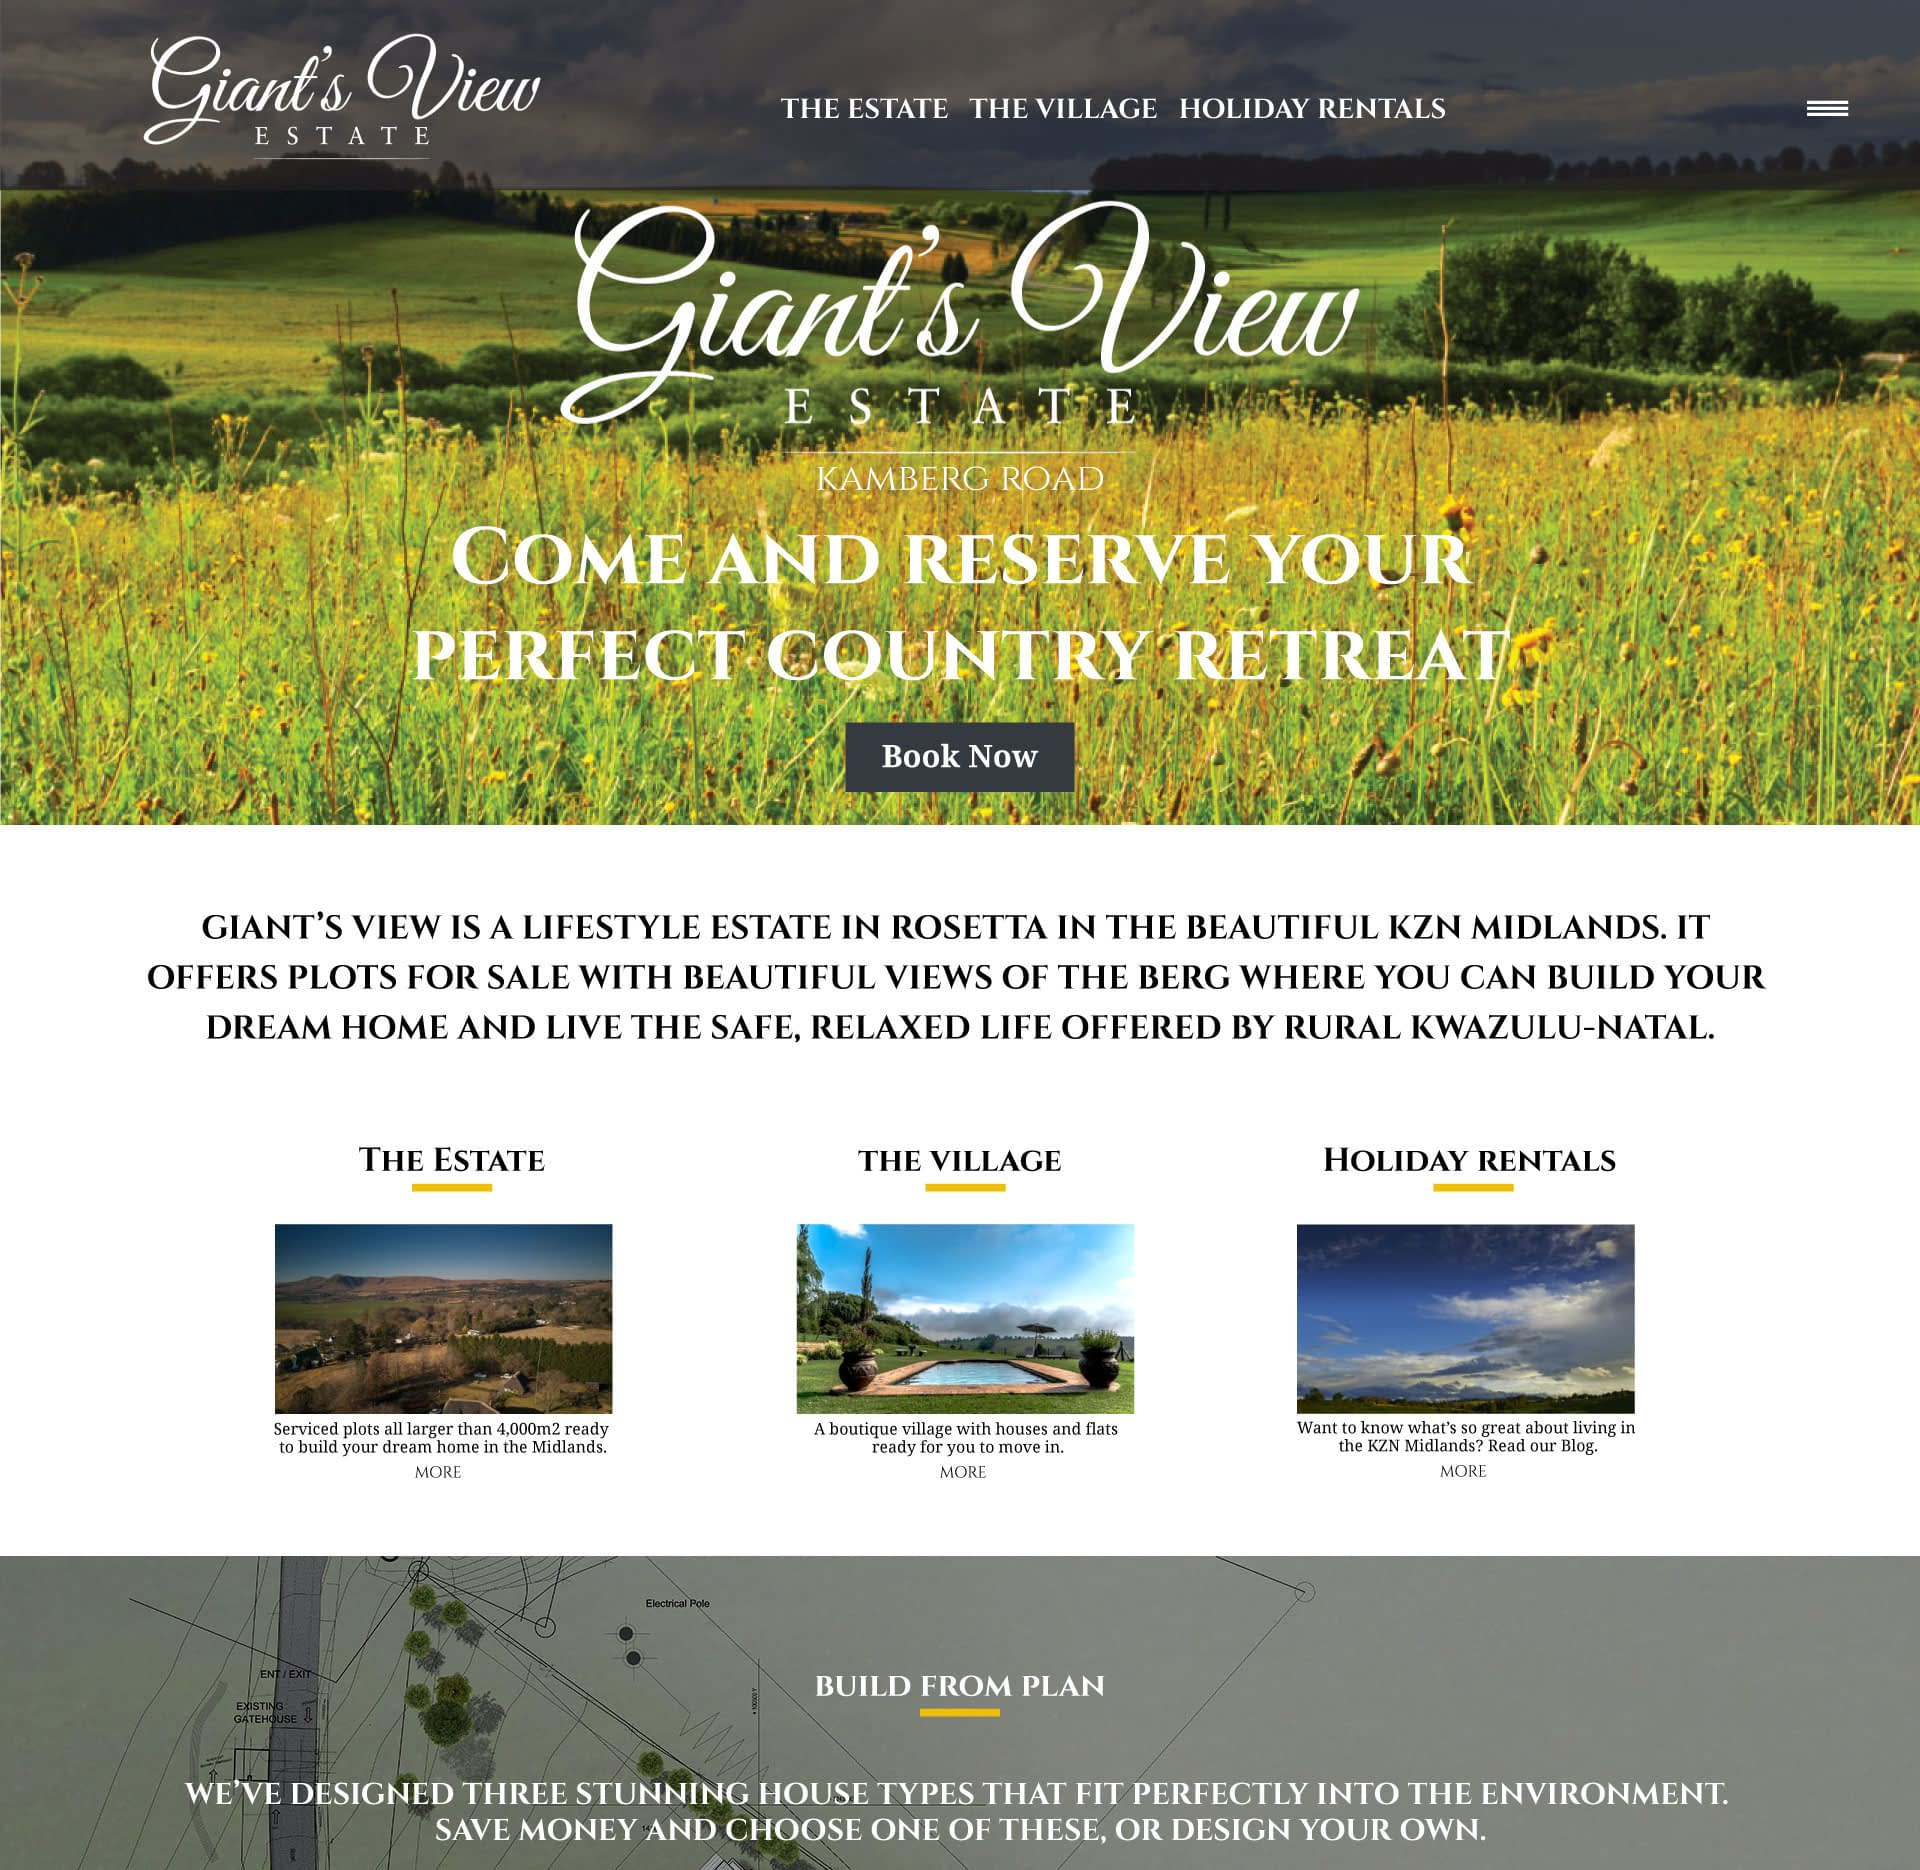 Giants View Estate website layout